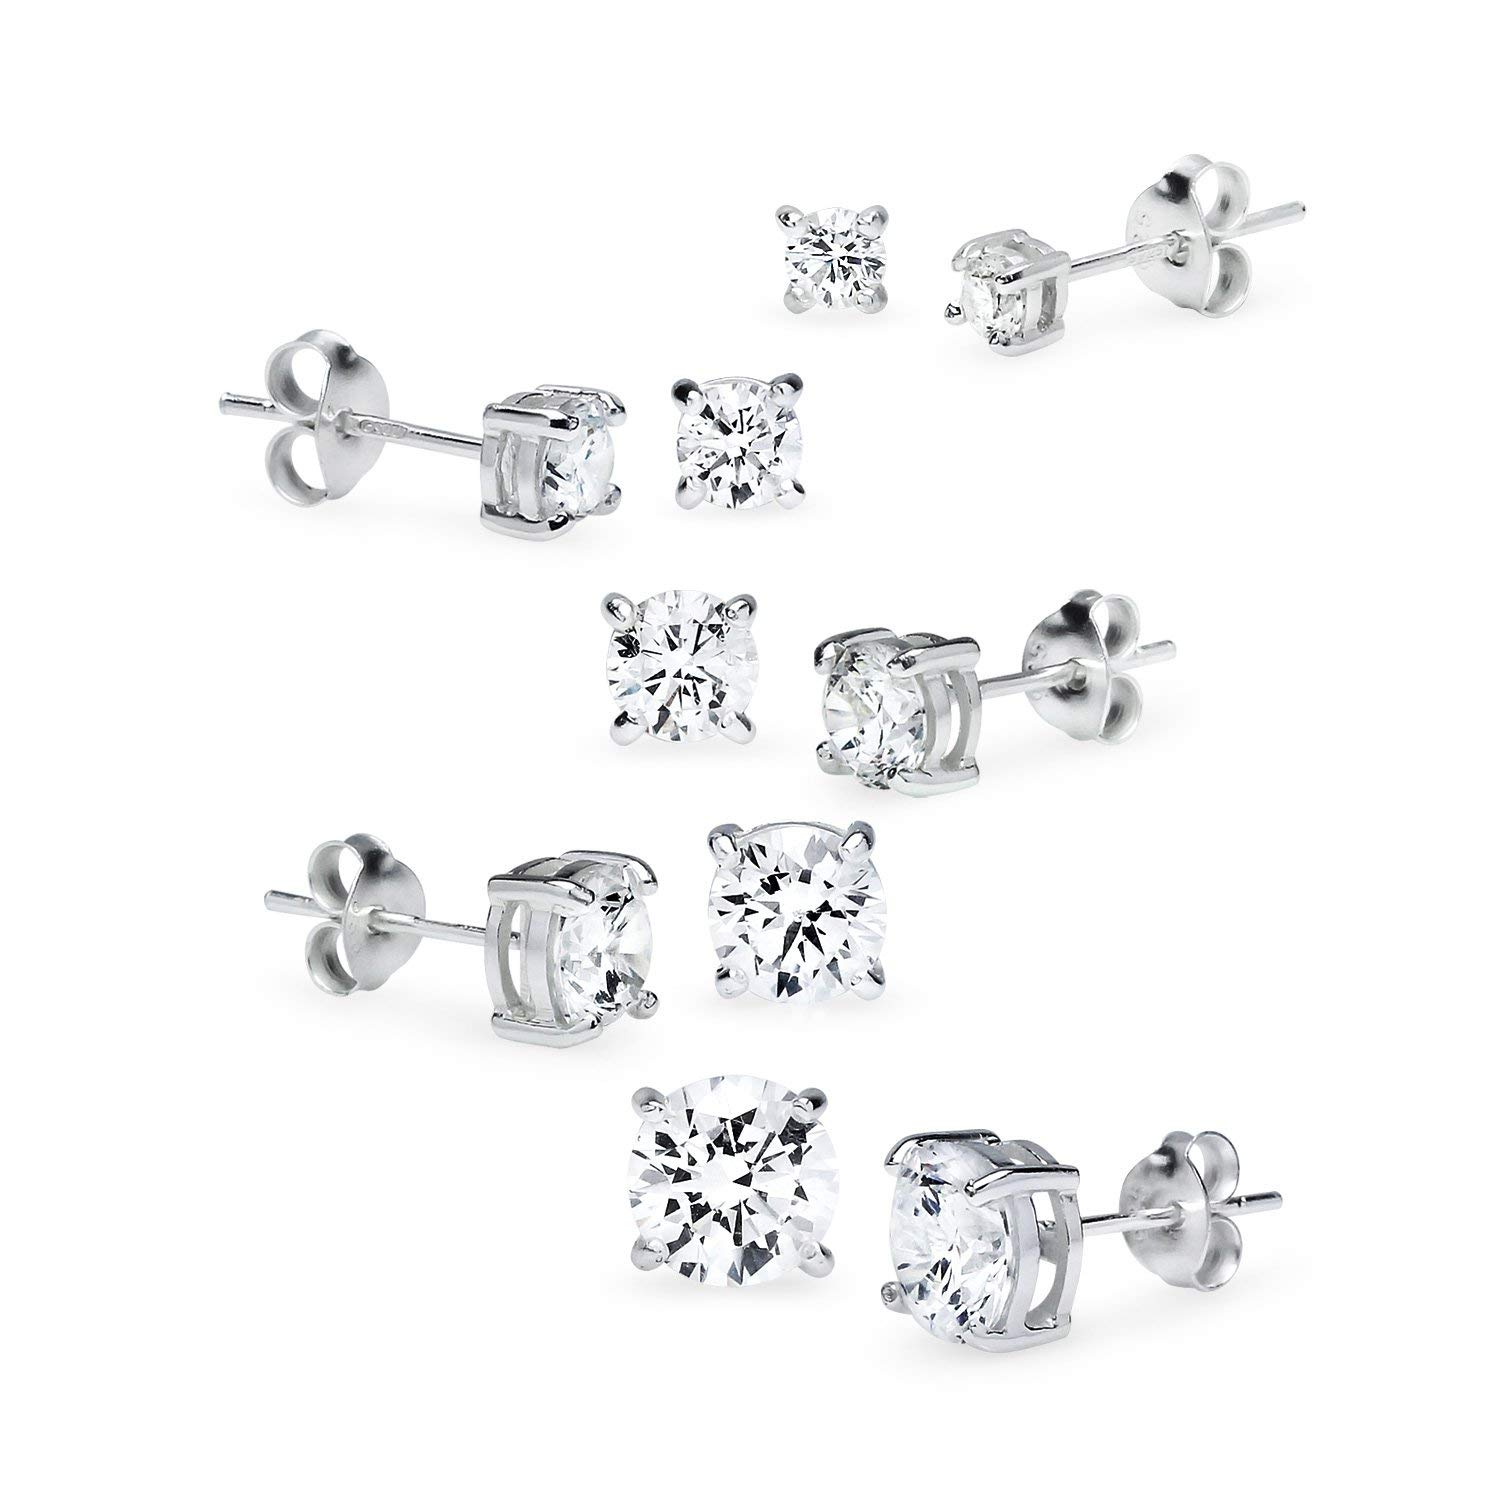 e03ecddab Get Quotations · 925 Sterling Silver 5 Pair Set of CZ Cubic Zirconia  Simulated Diamond Stud Earrings 2mm 3mm